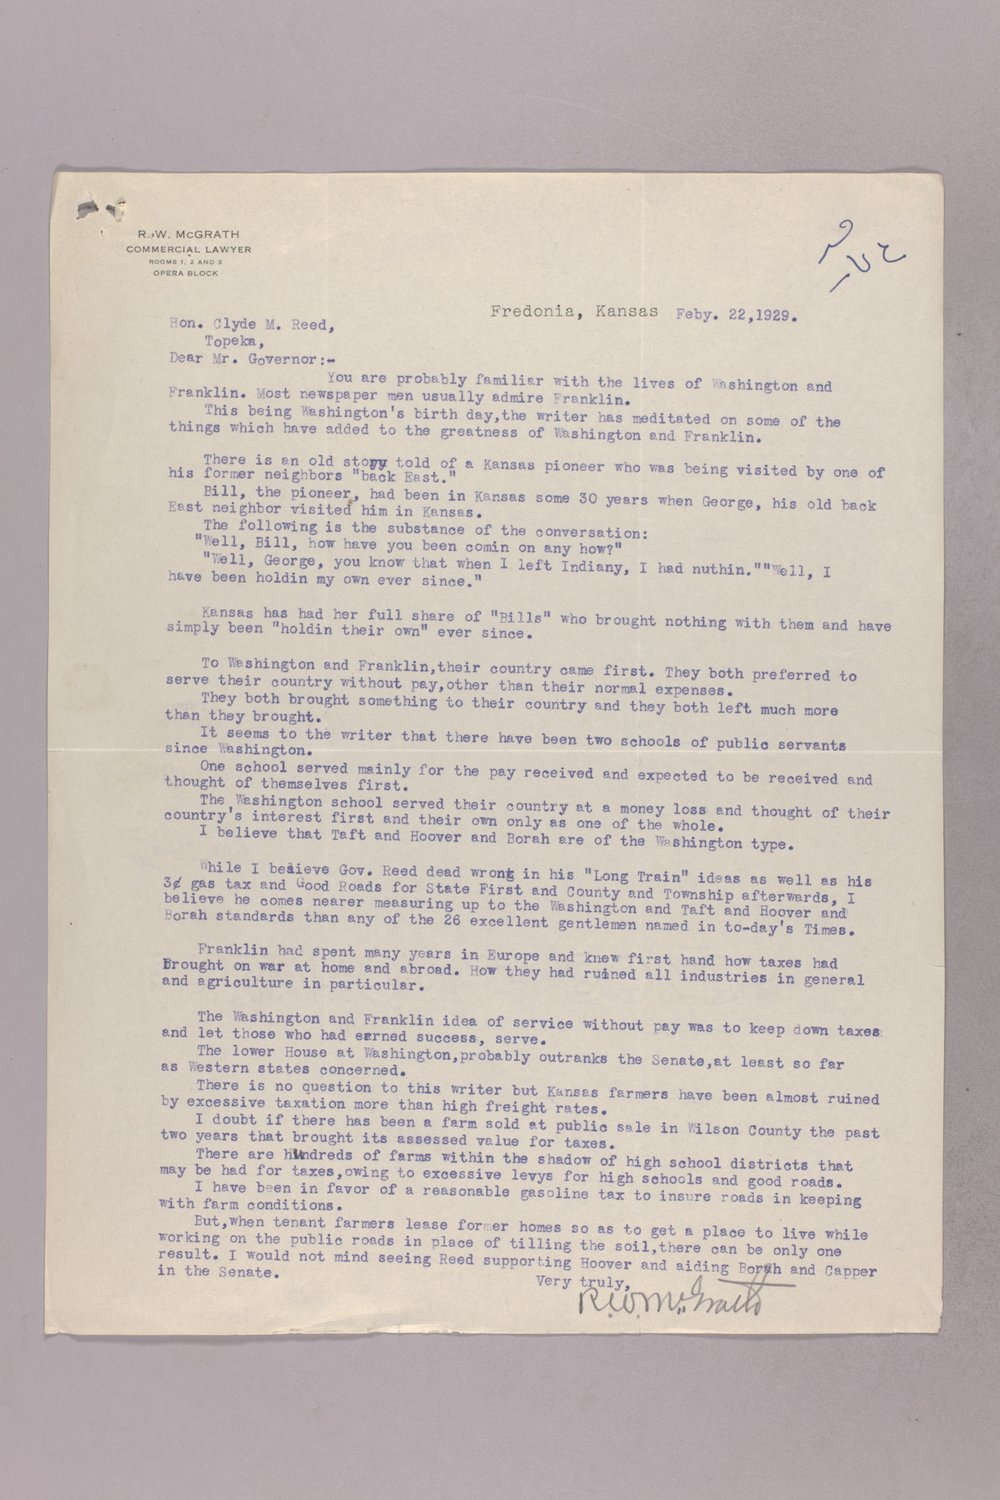 Governor Clyde M. Reed correspondence, tax matters - 12